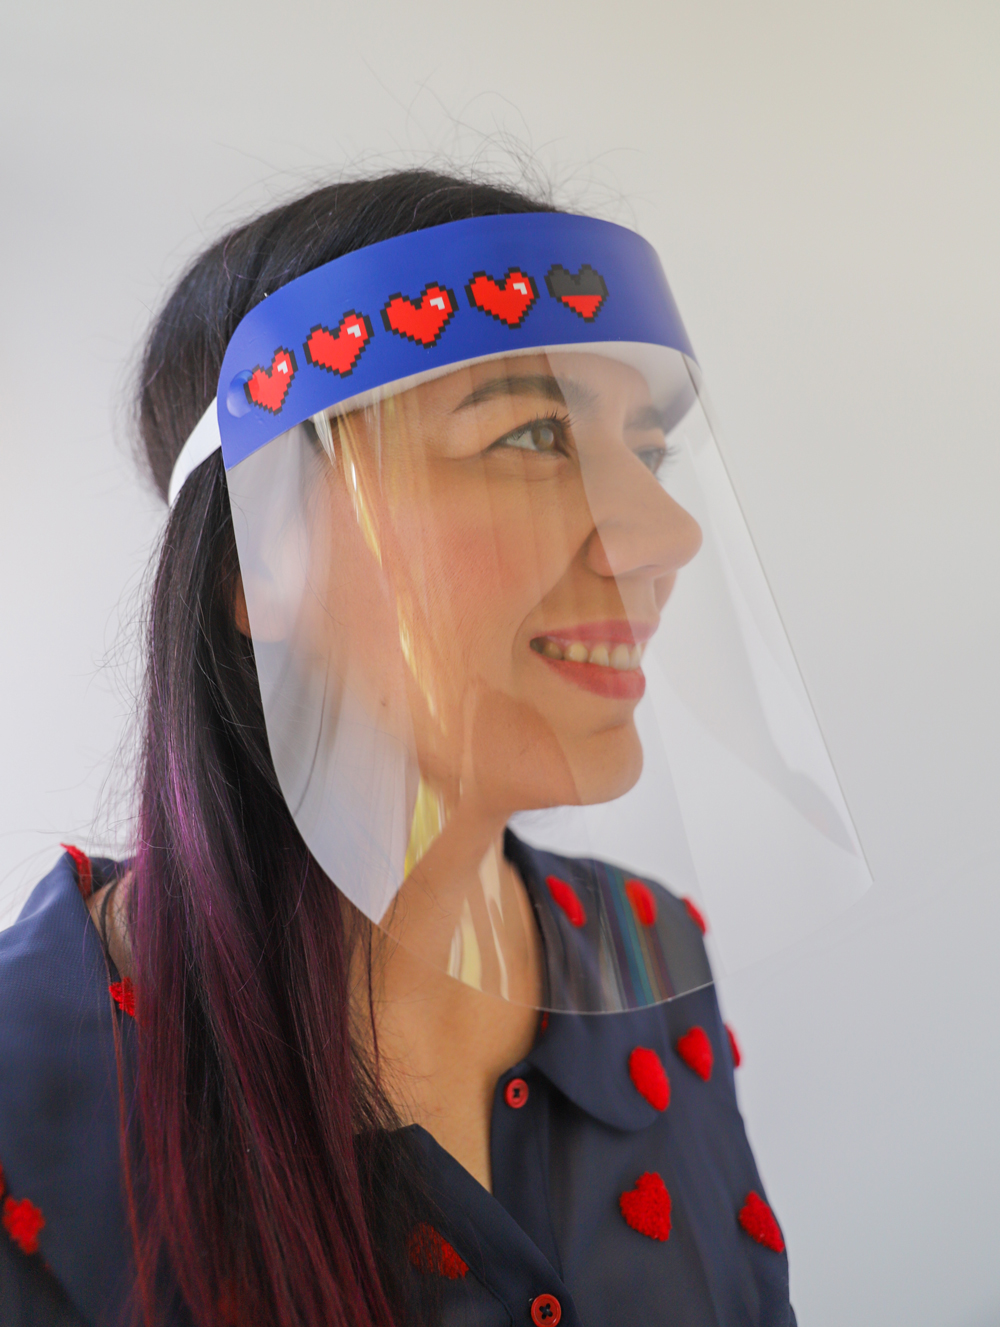 Video Game Hearts Plastic Face Shield protects your eyes, mouth, and nose with style and fun